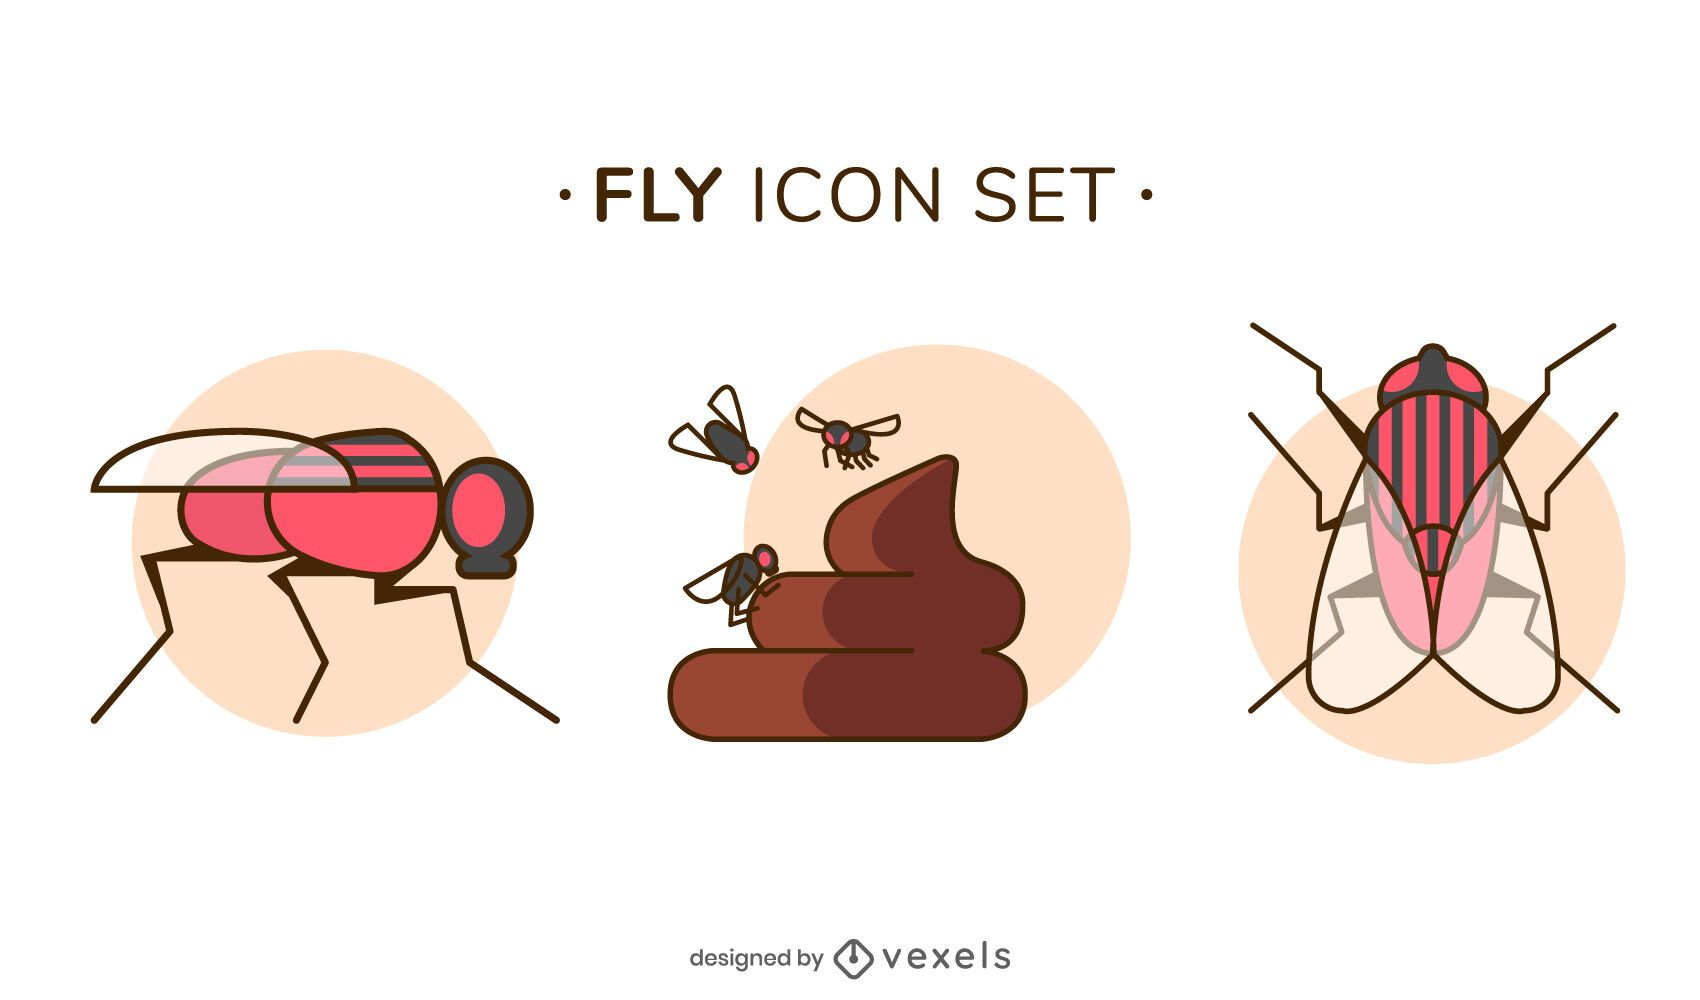 Fly icon set